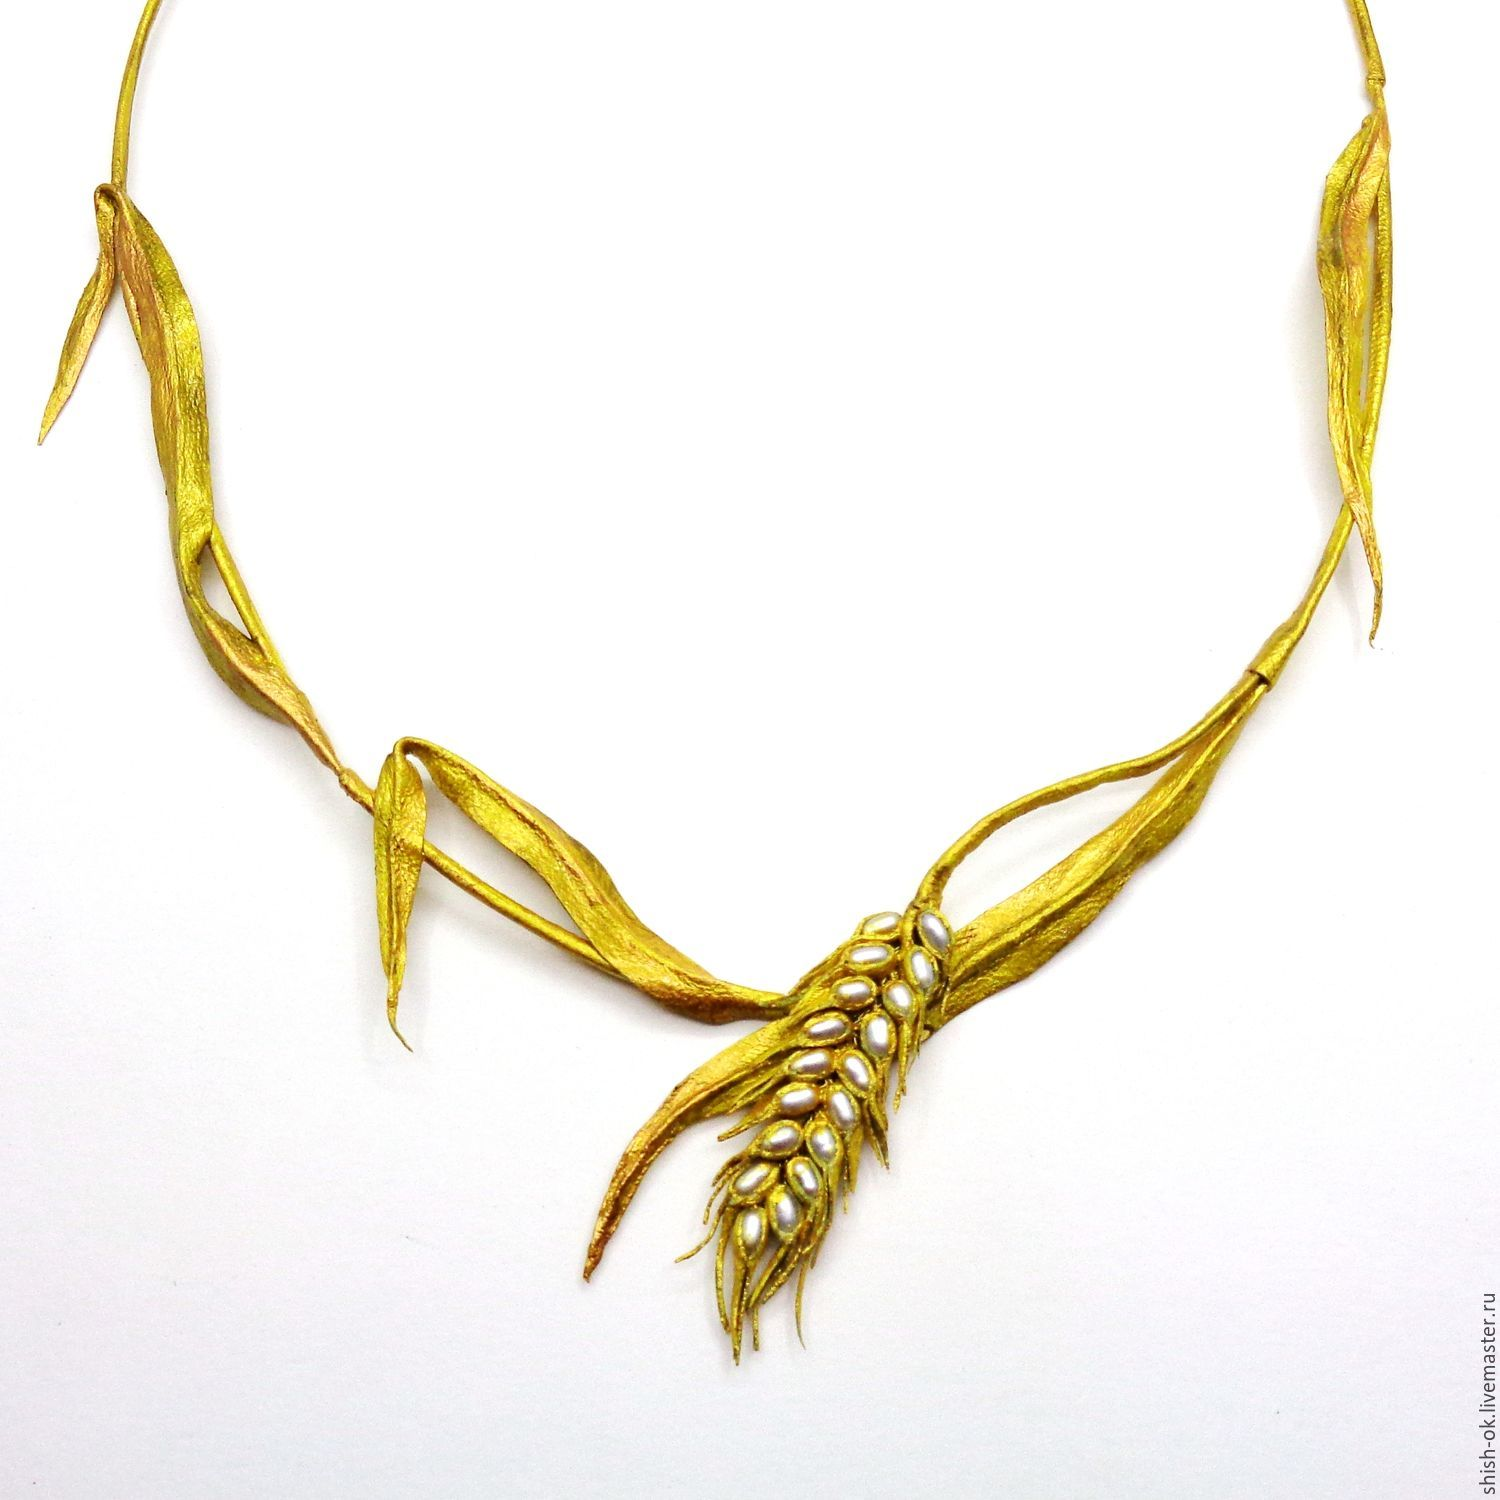 Necklace made of leather and pearls 'Kolosok', Necklace, Moscow,  Фото №1